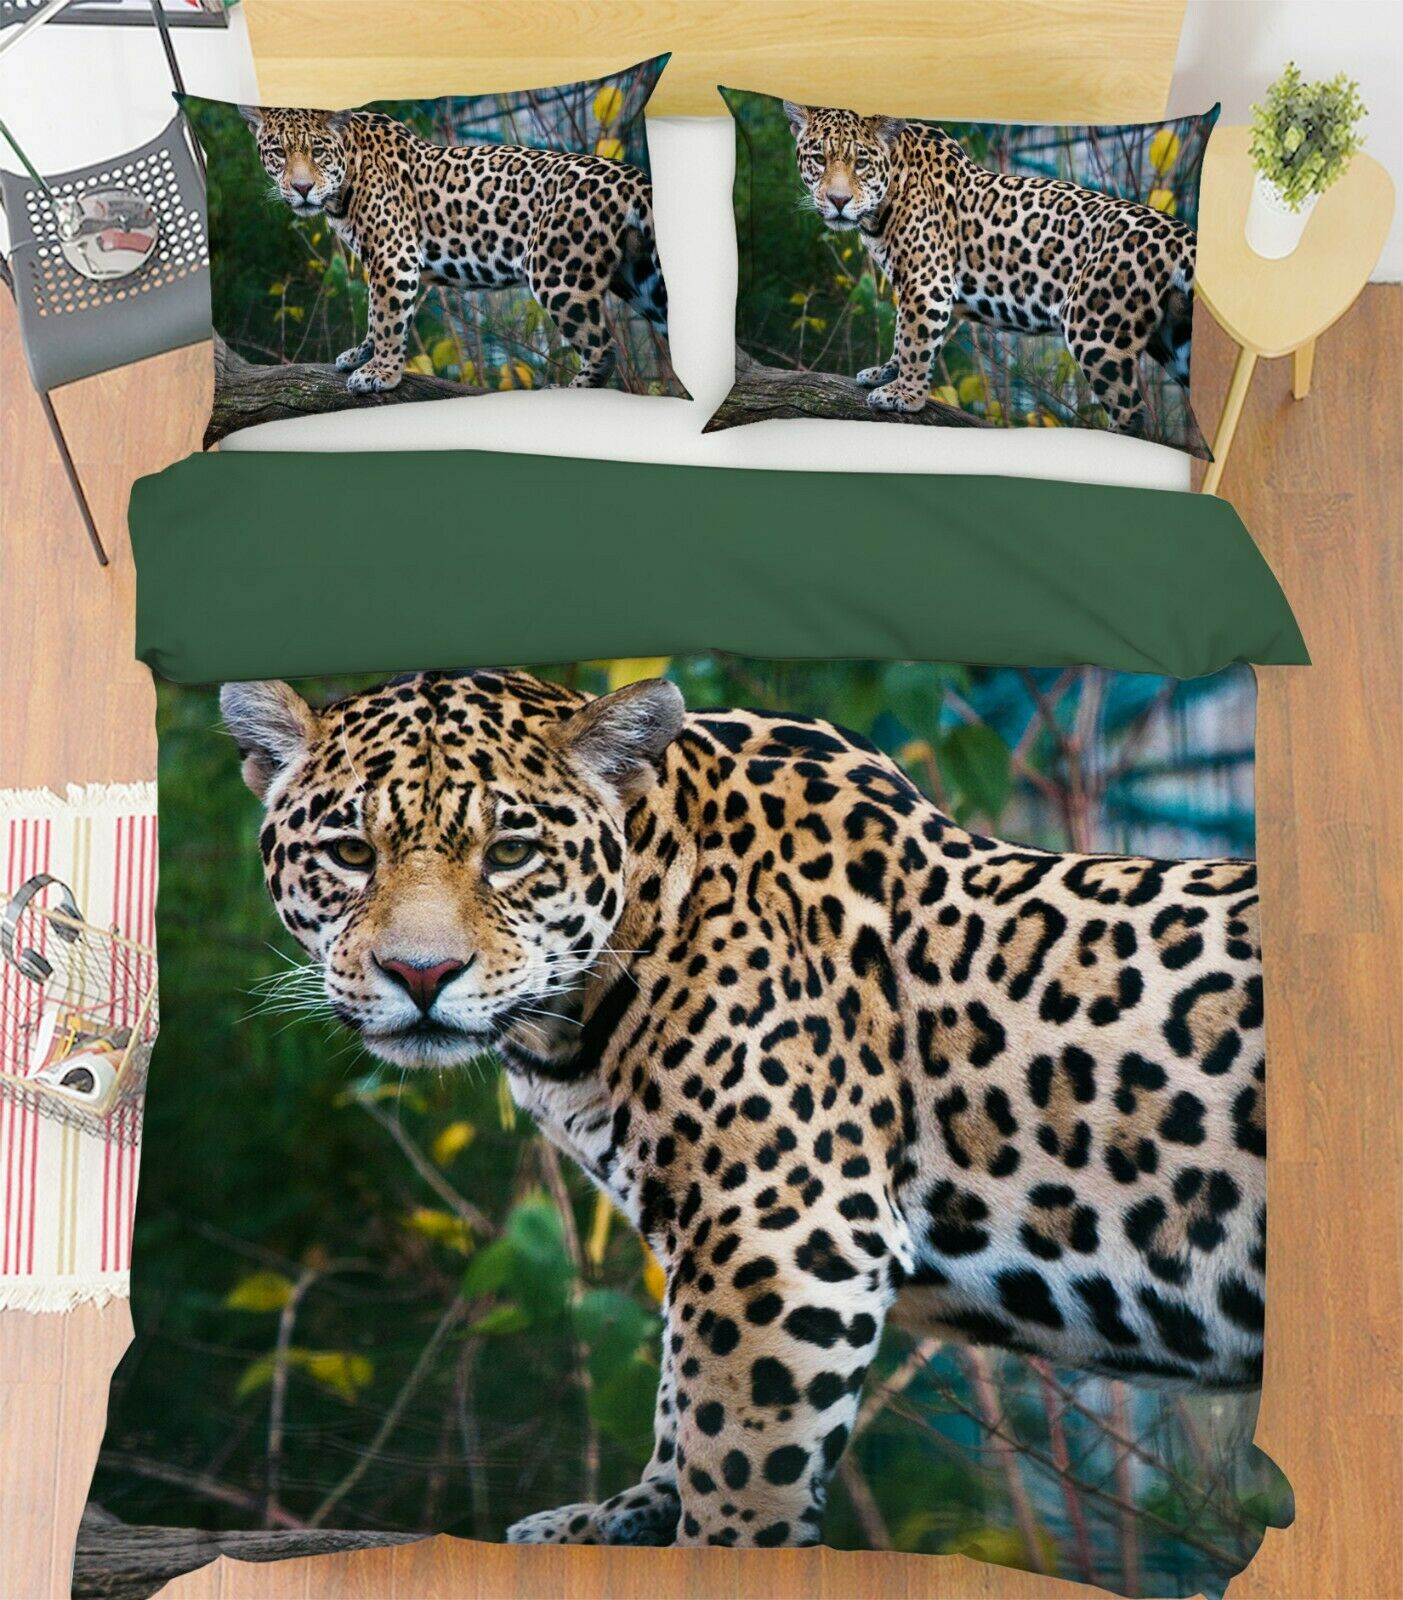 3D Leopard Tree P02 Animal Bed Pillowcases Quilt Duvet Cover Set Queen King Zoe